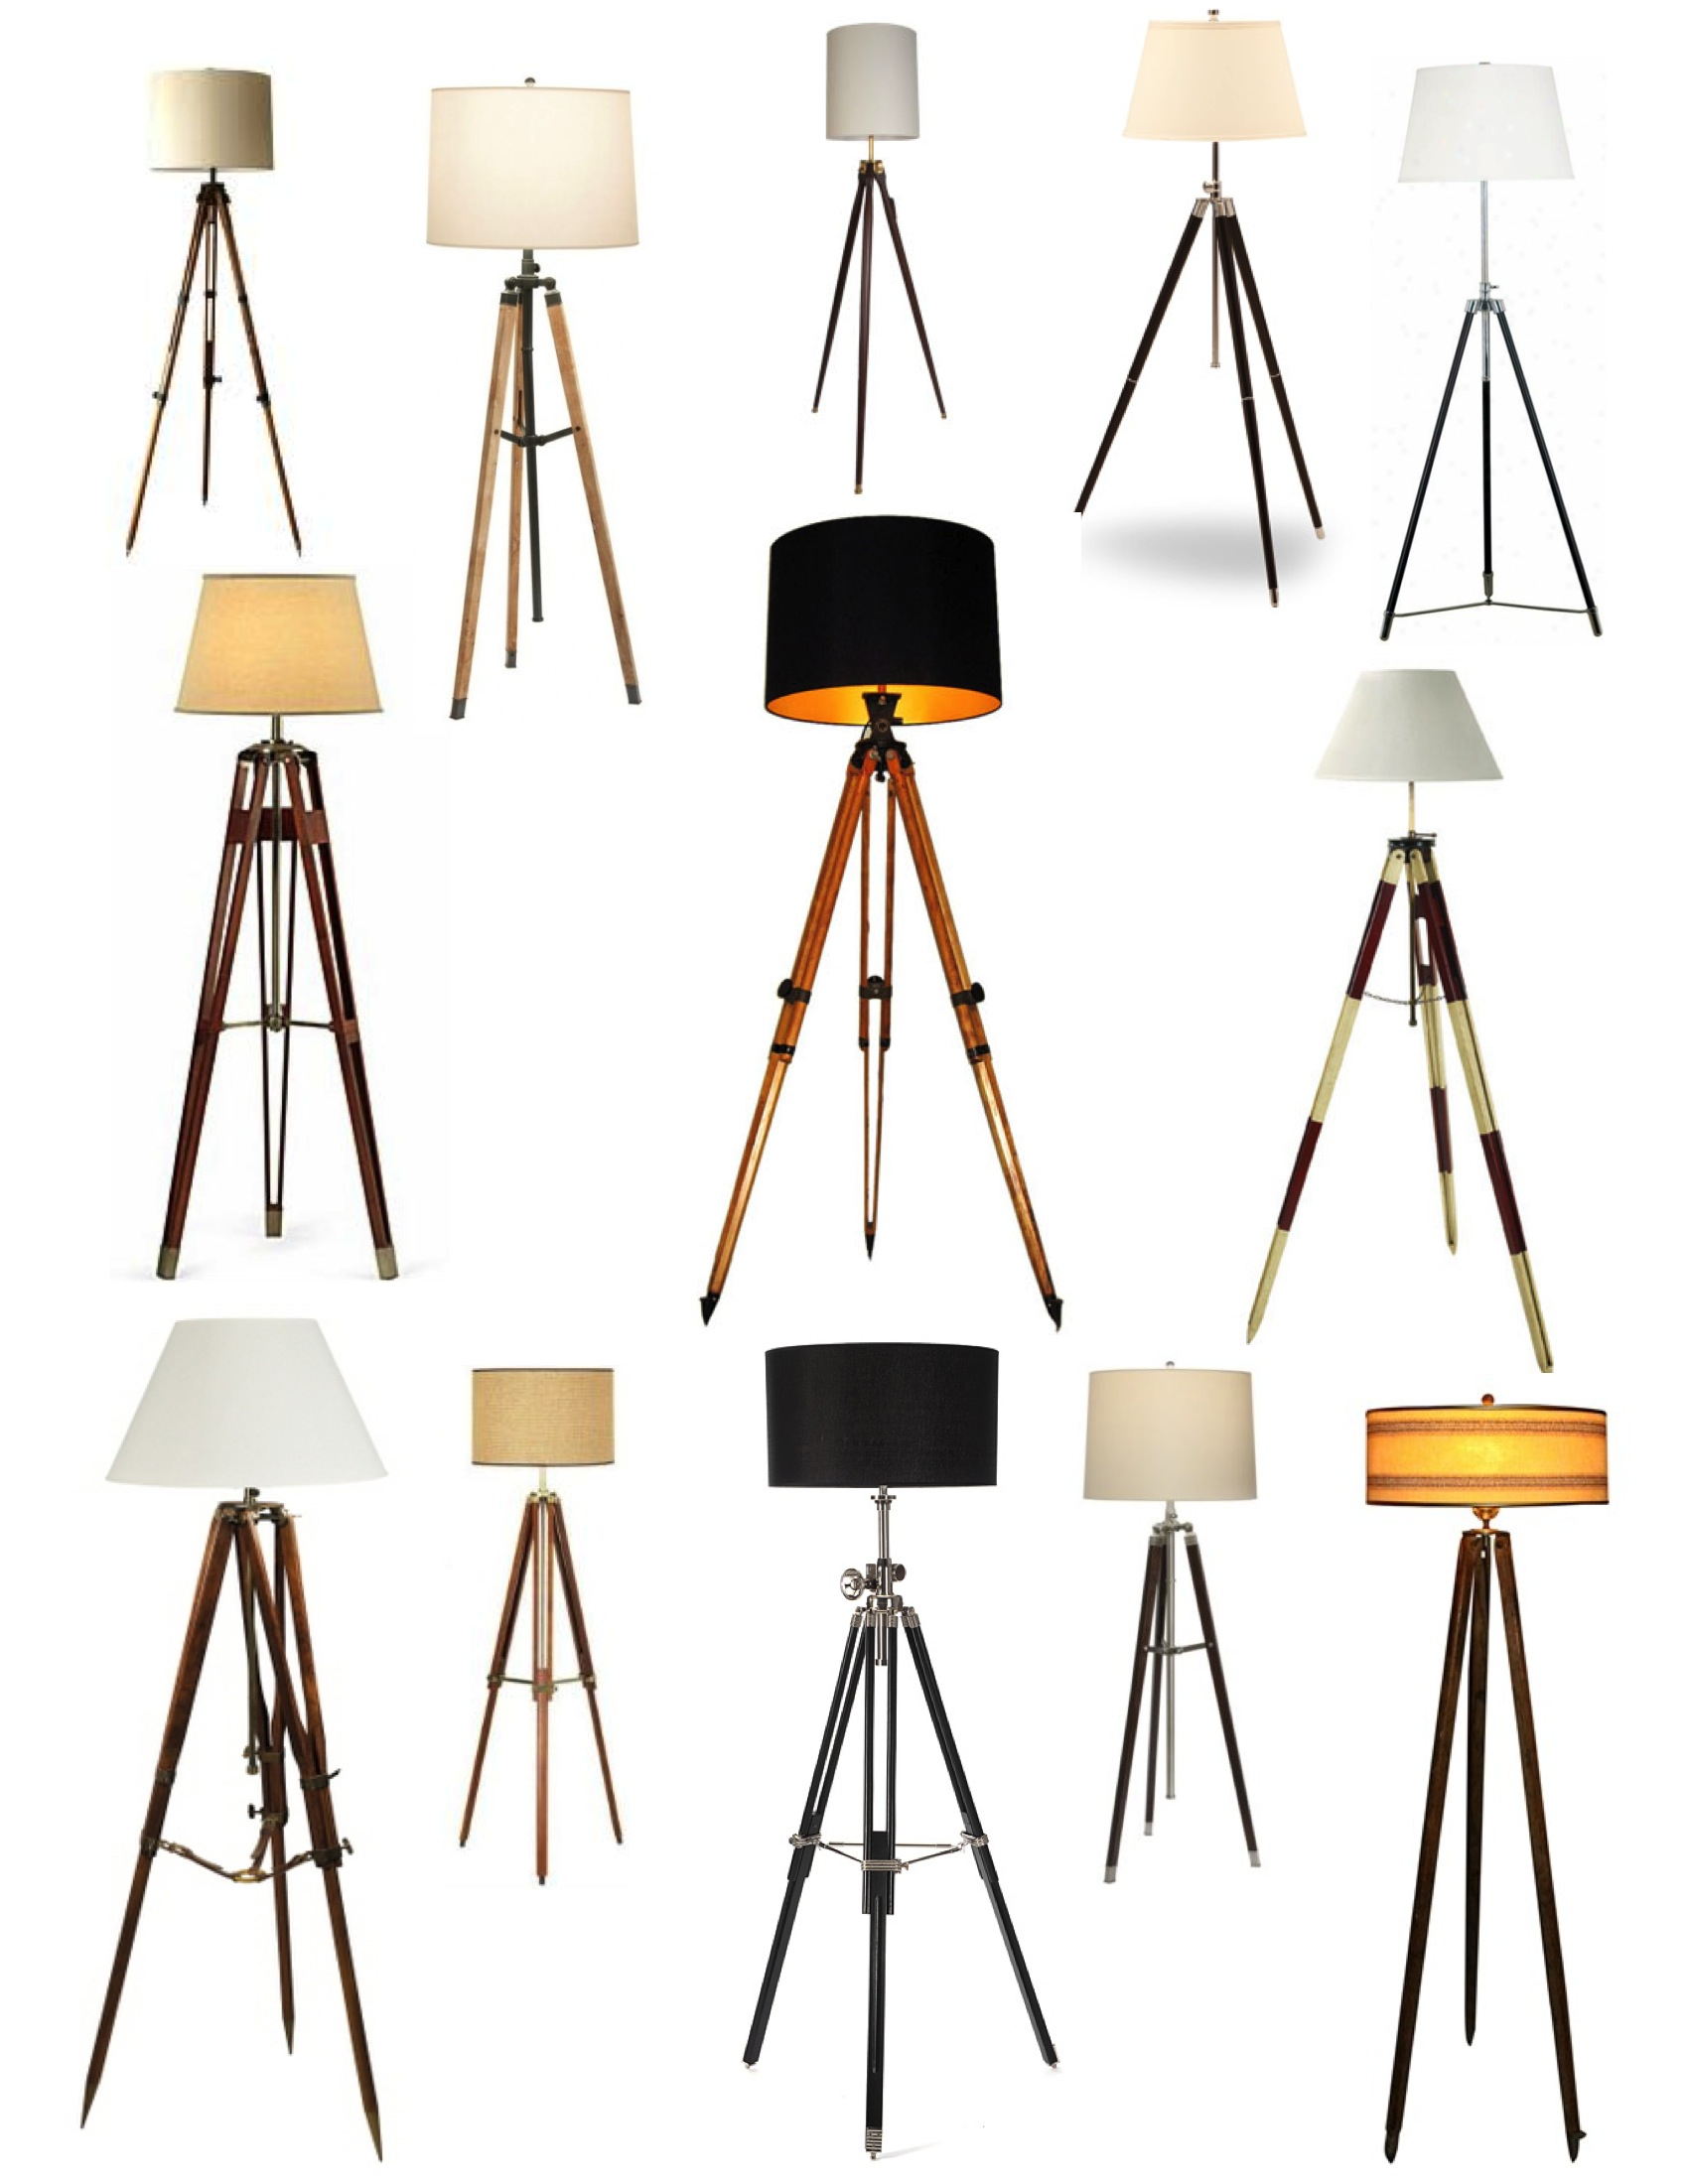 Awesome Tripod Lamp for Interior Lighting Ideas: Tripod Floor Lamp | Tripod Lamp | Surveyor Floor Lamp